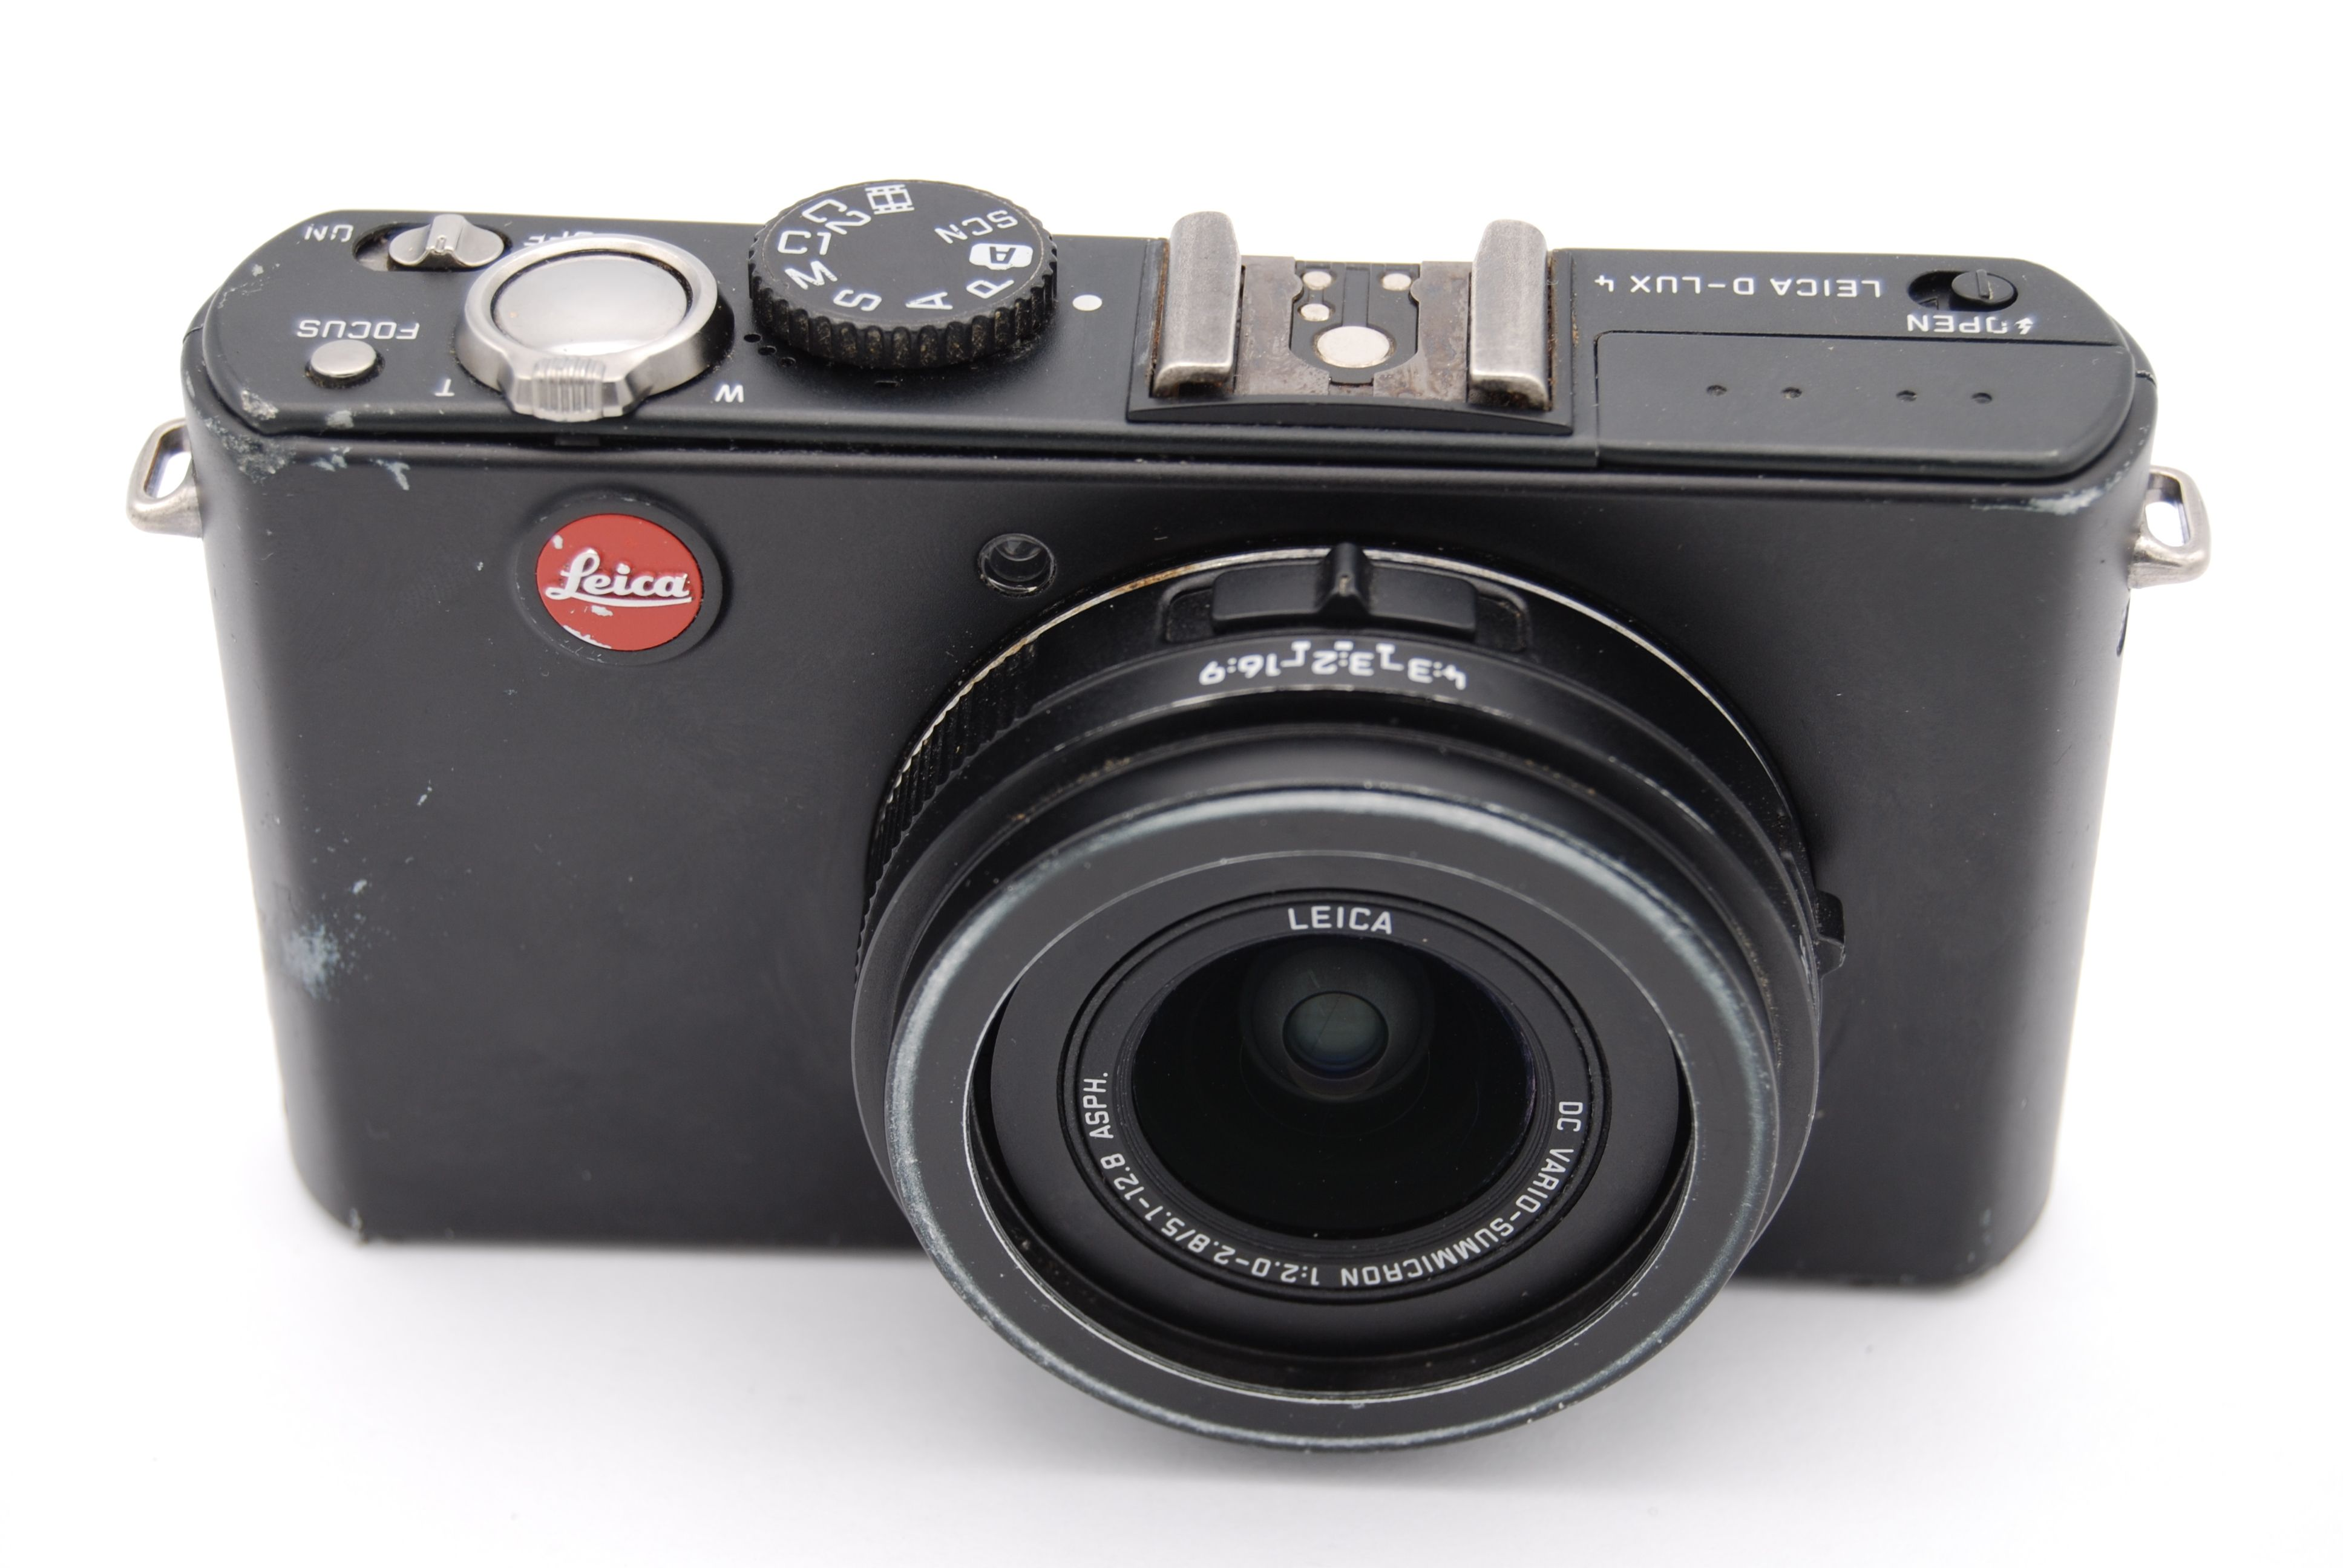 Leica d-lux 4 youtube.